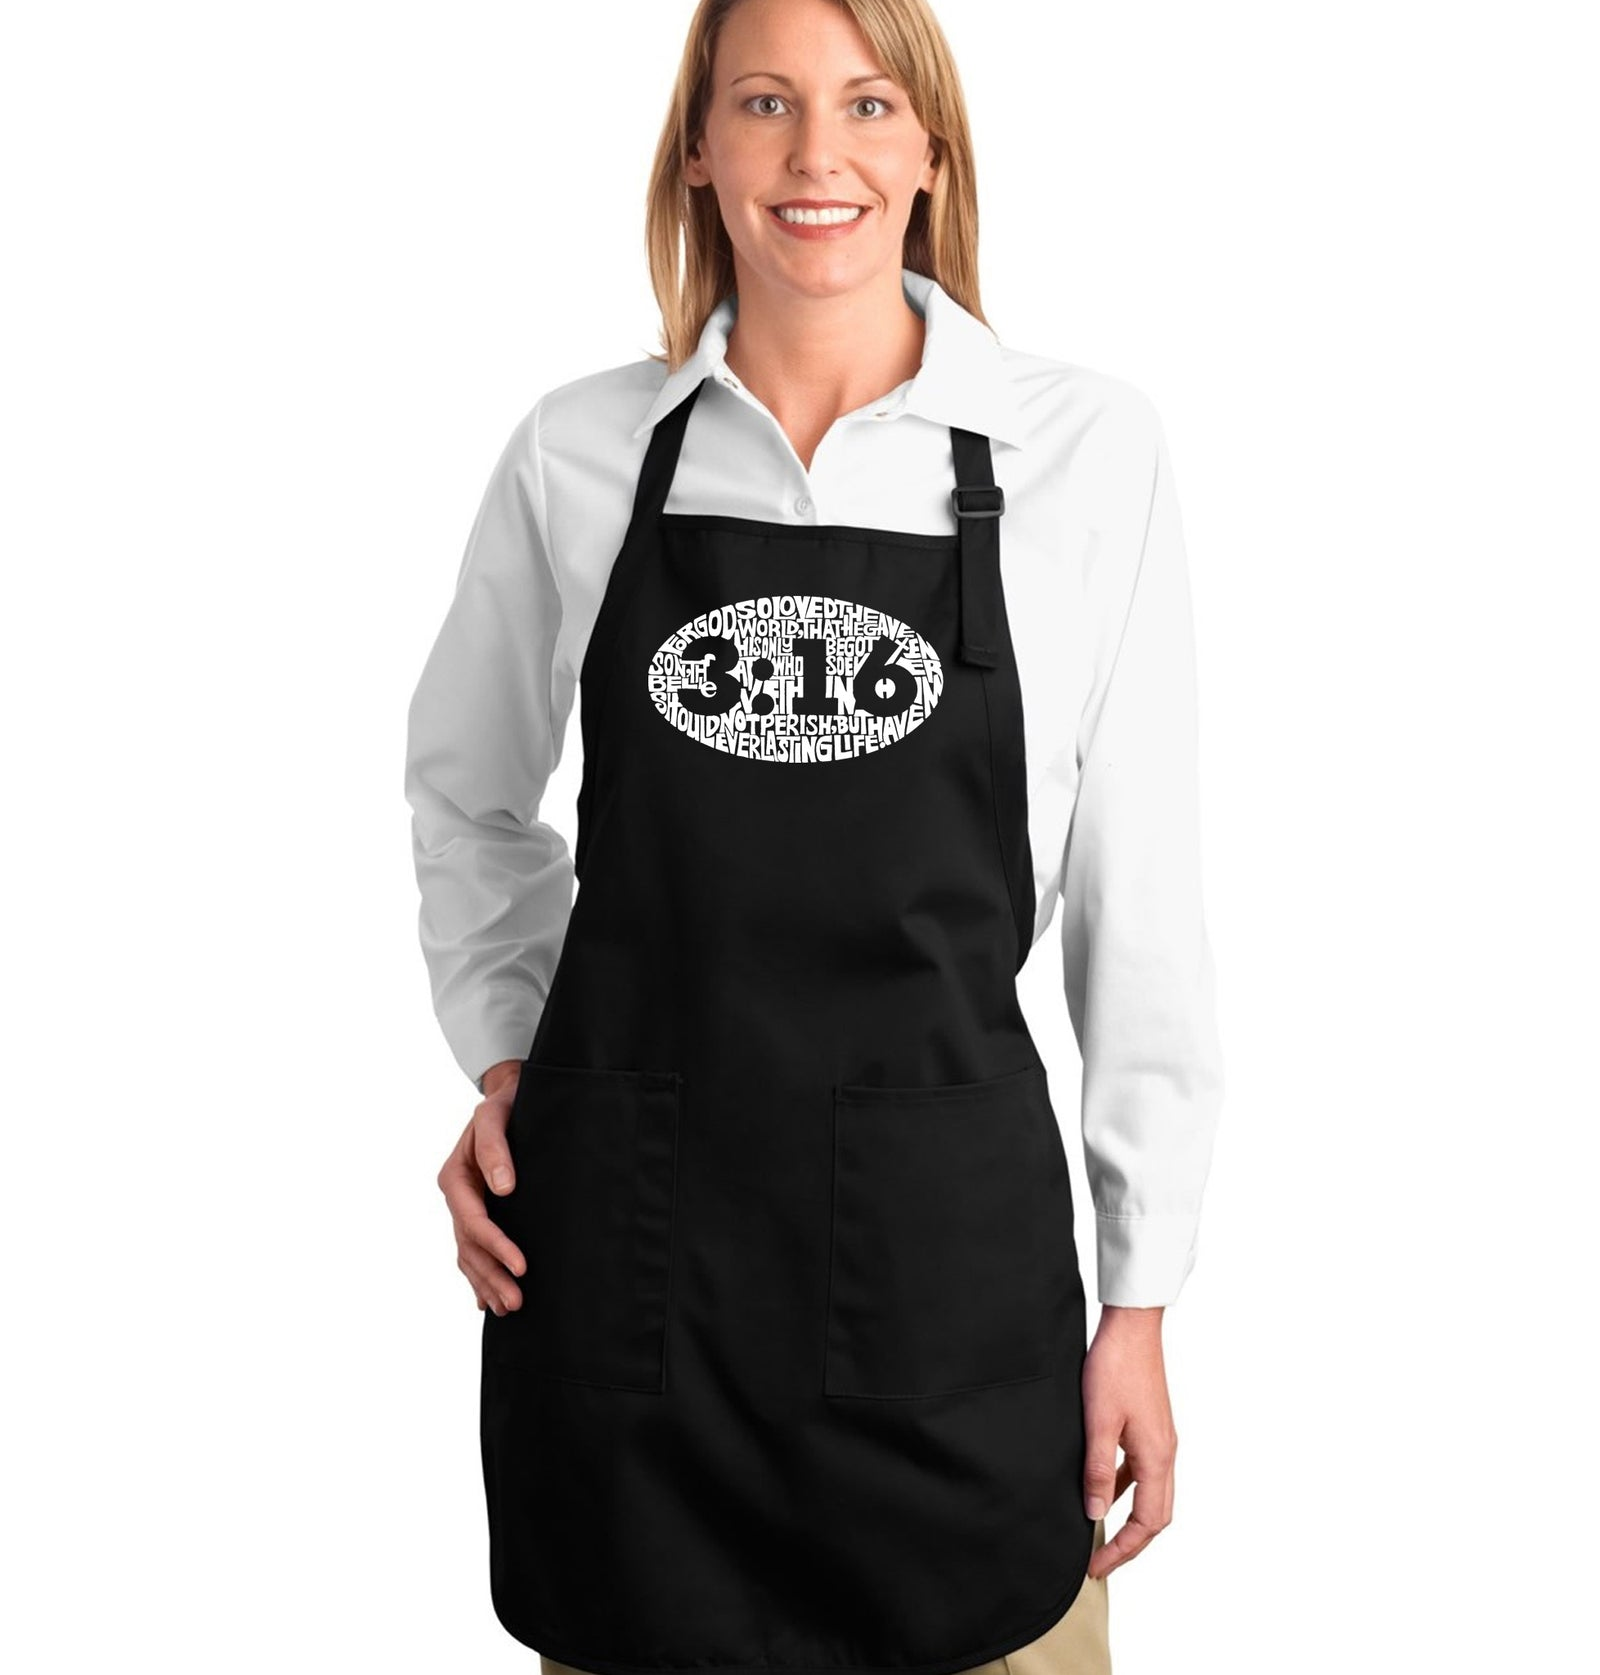 Full Length Apron - John 3:16